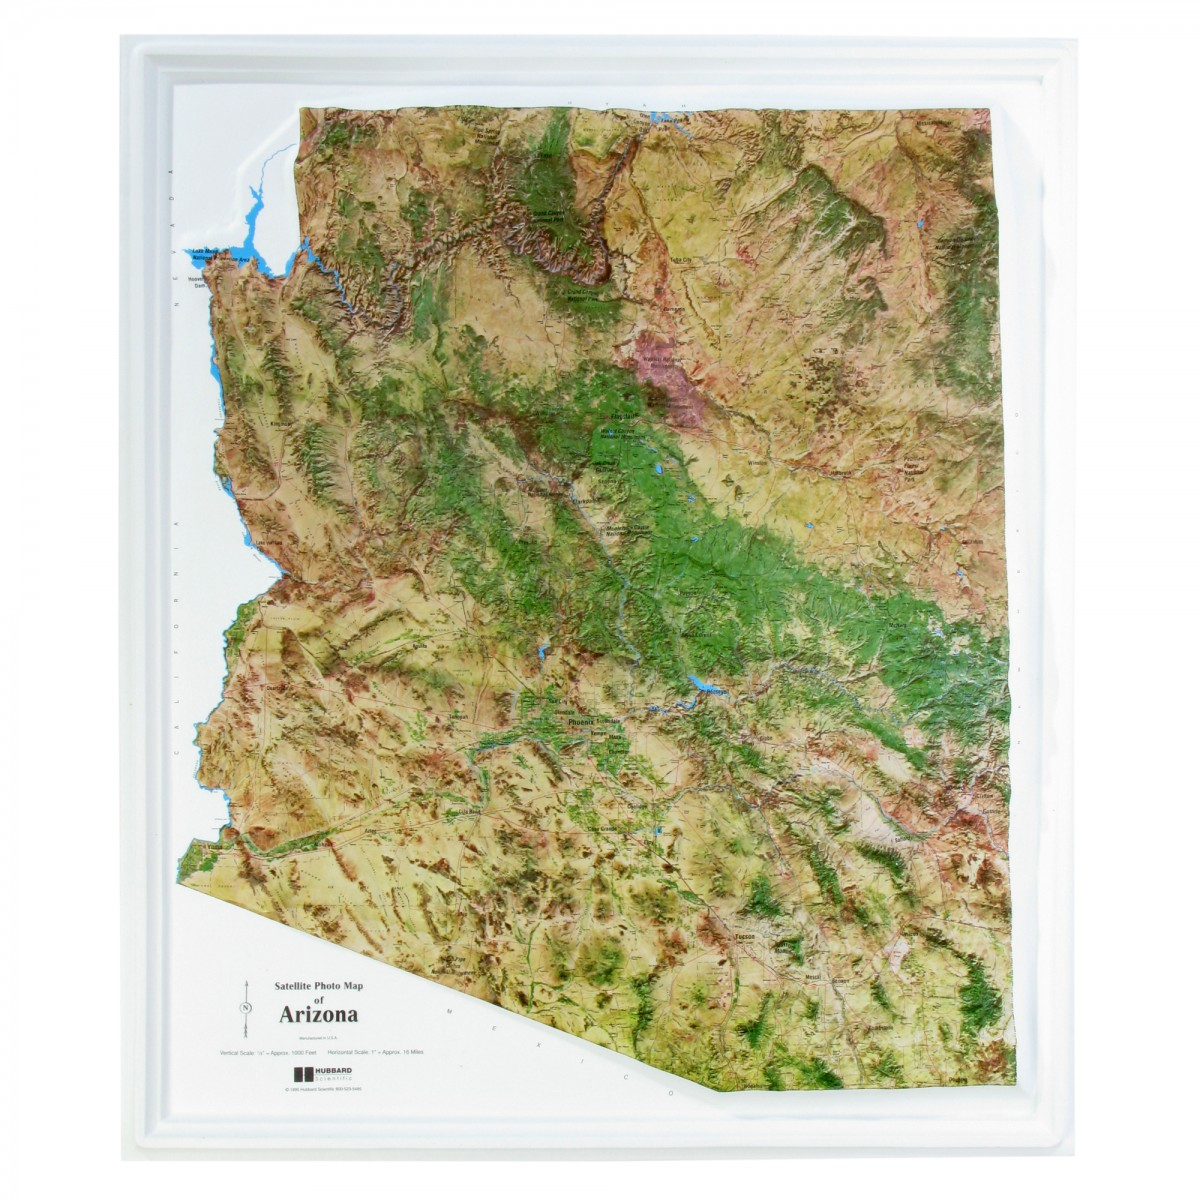 3d Map Of Arizona.Raised Relief 3d Map Of Arizona Ncr Sold By Geomart